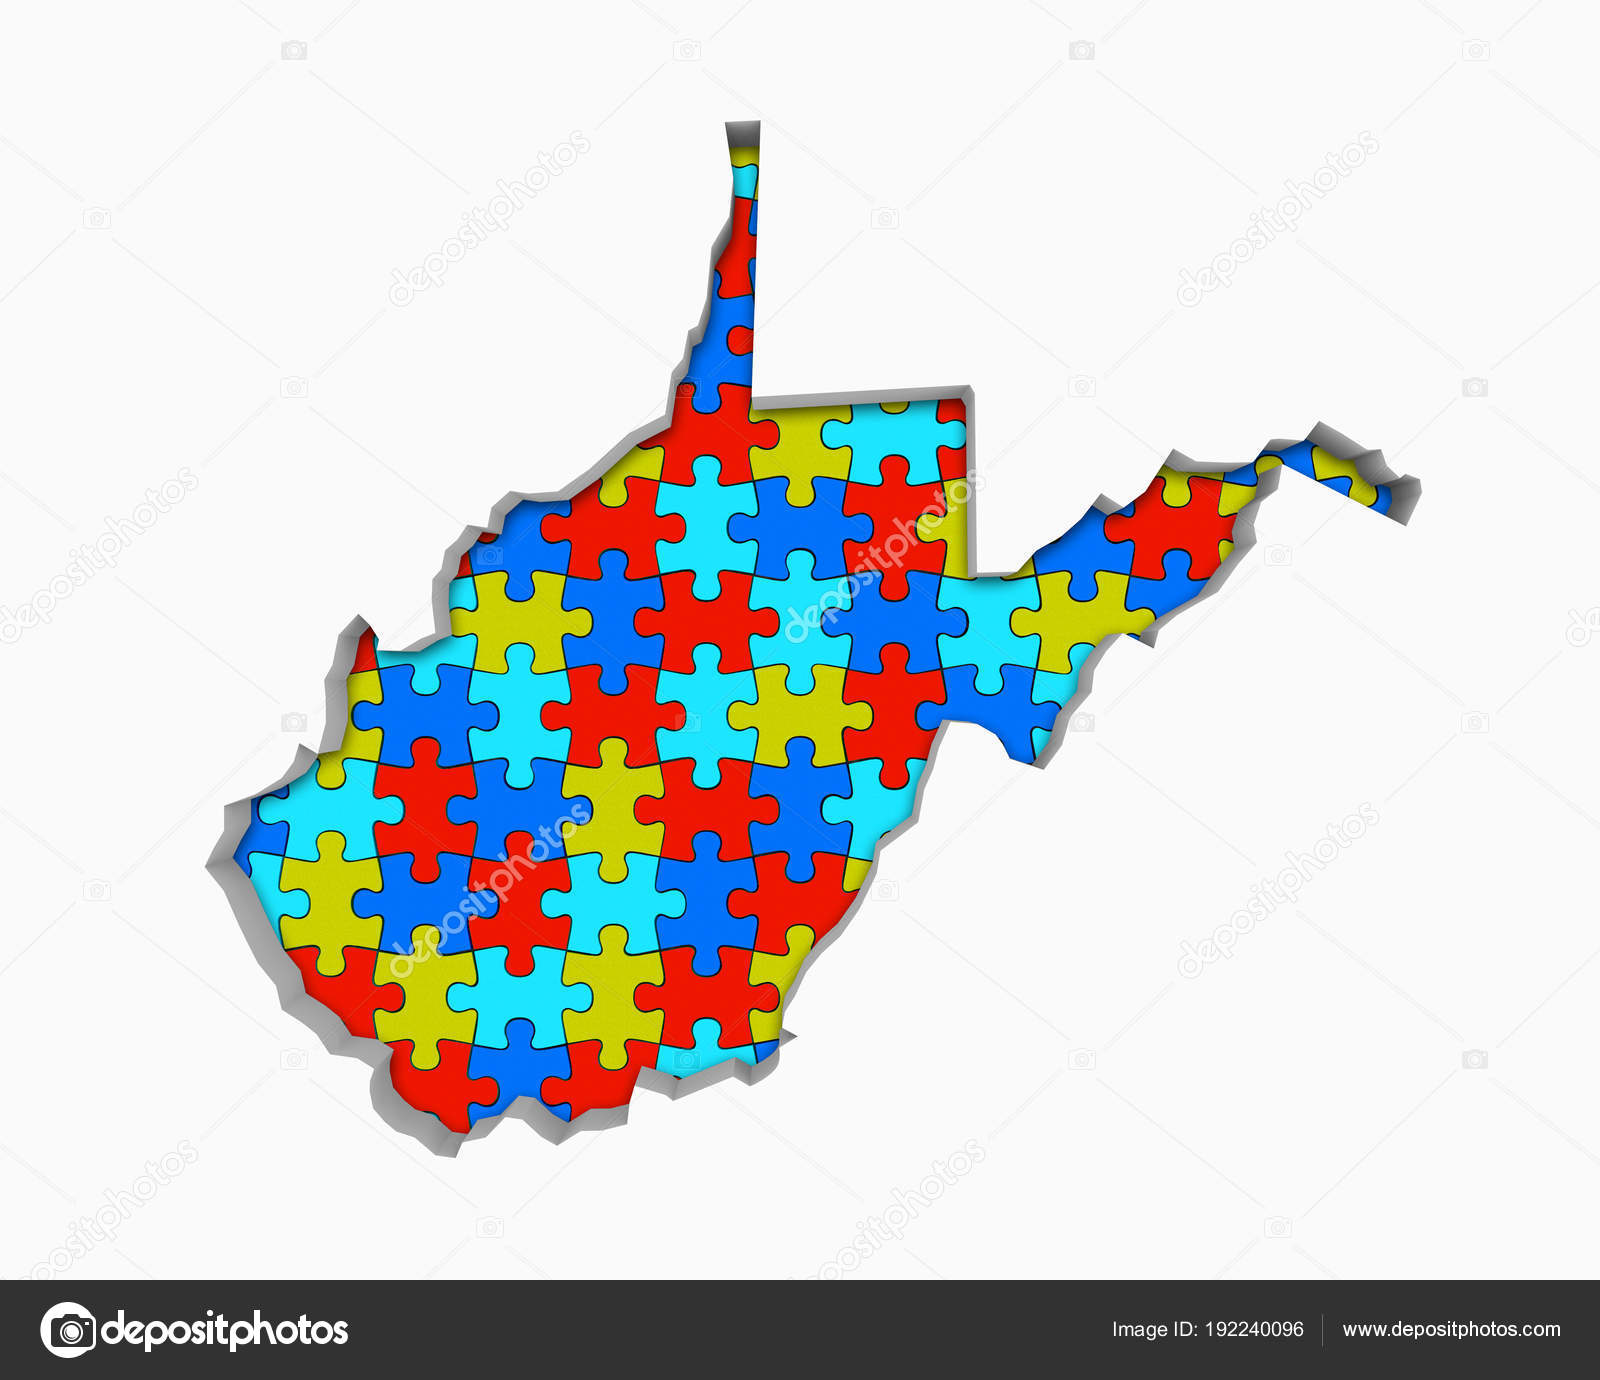 Map Of Virginia And West Virginia Together.West Virginia Puzzle Pieces Map Working Together Illustration